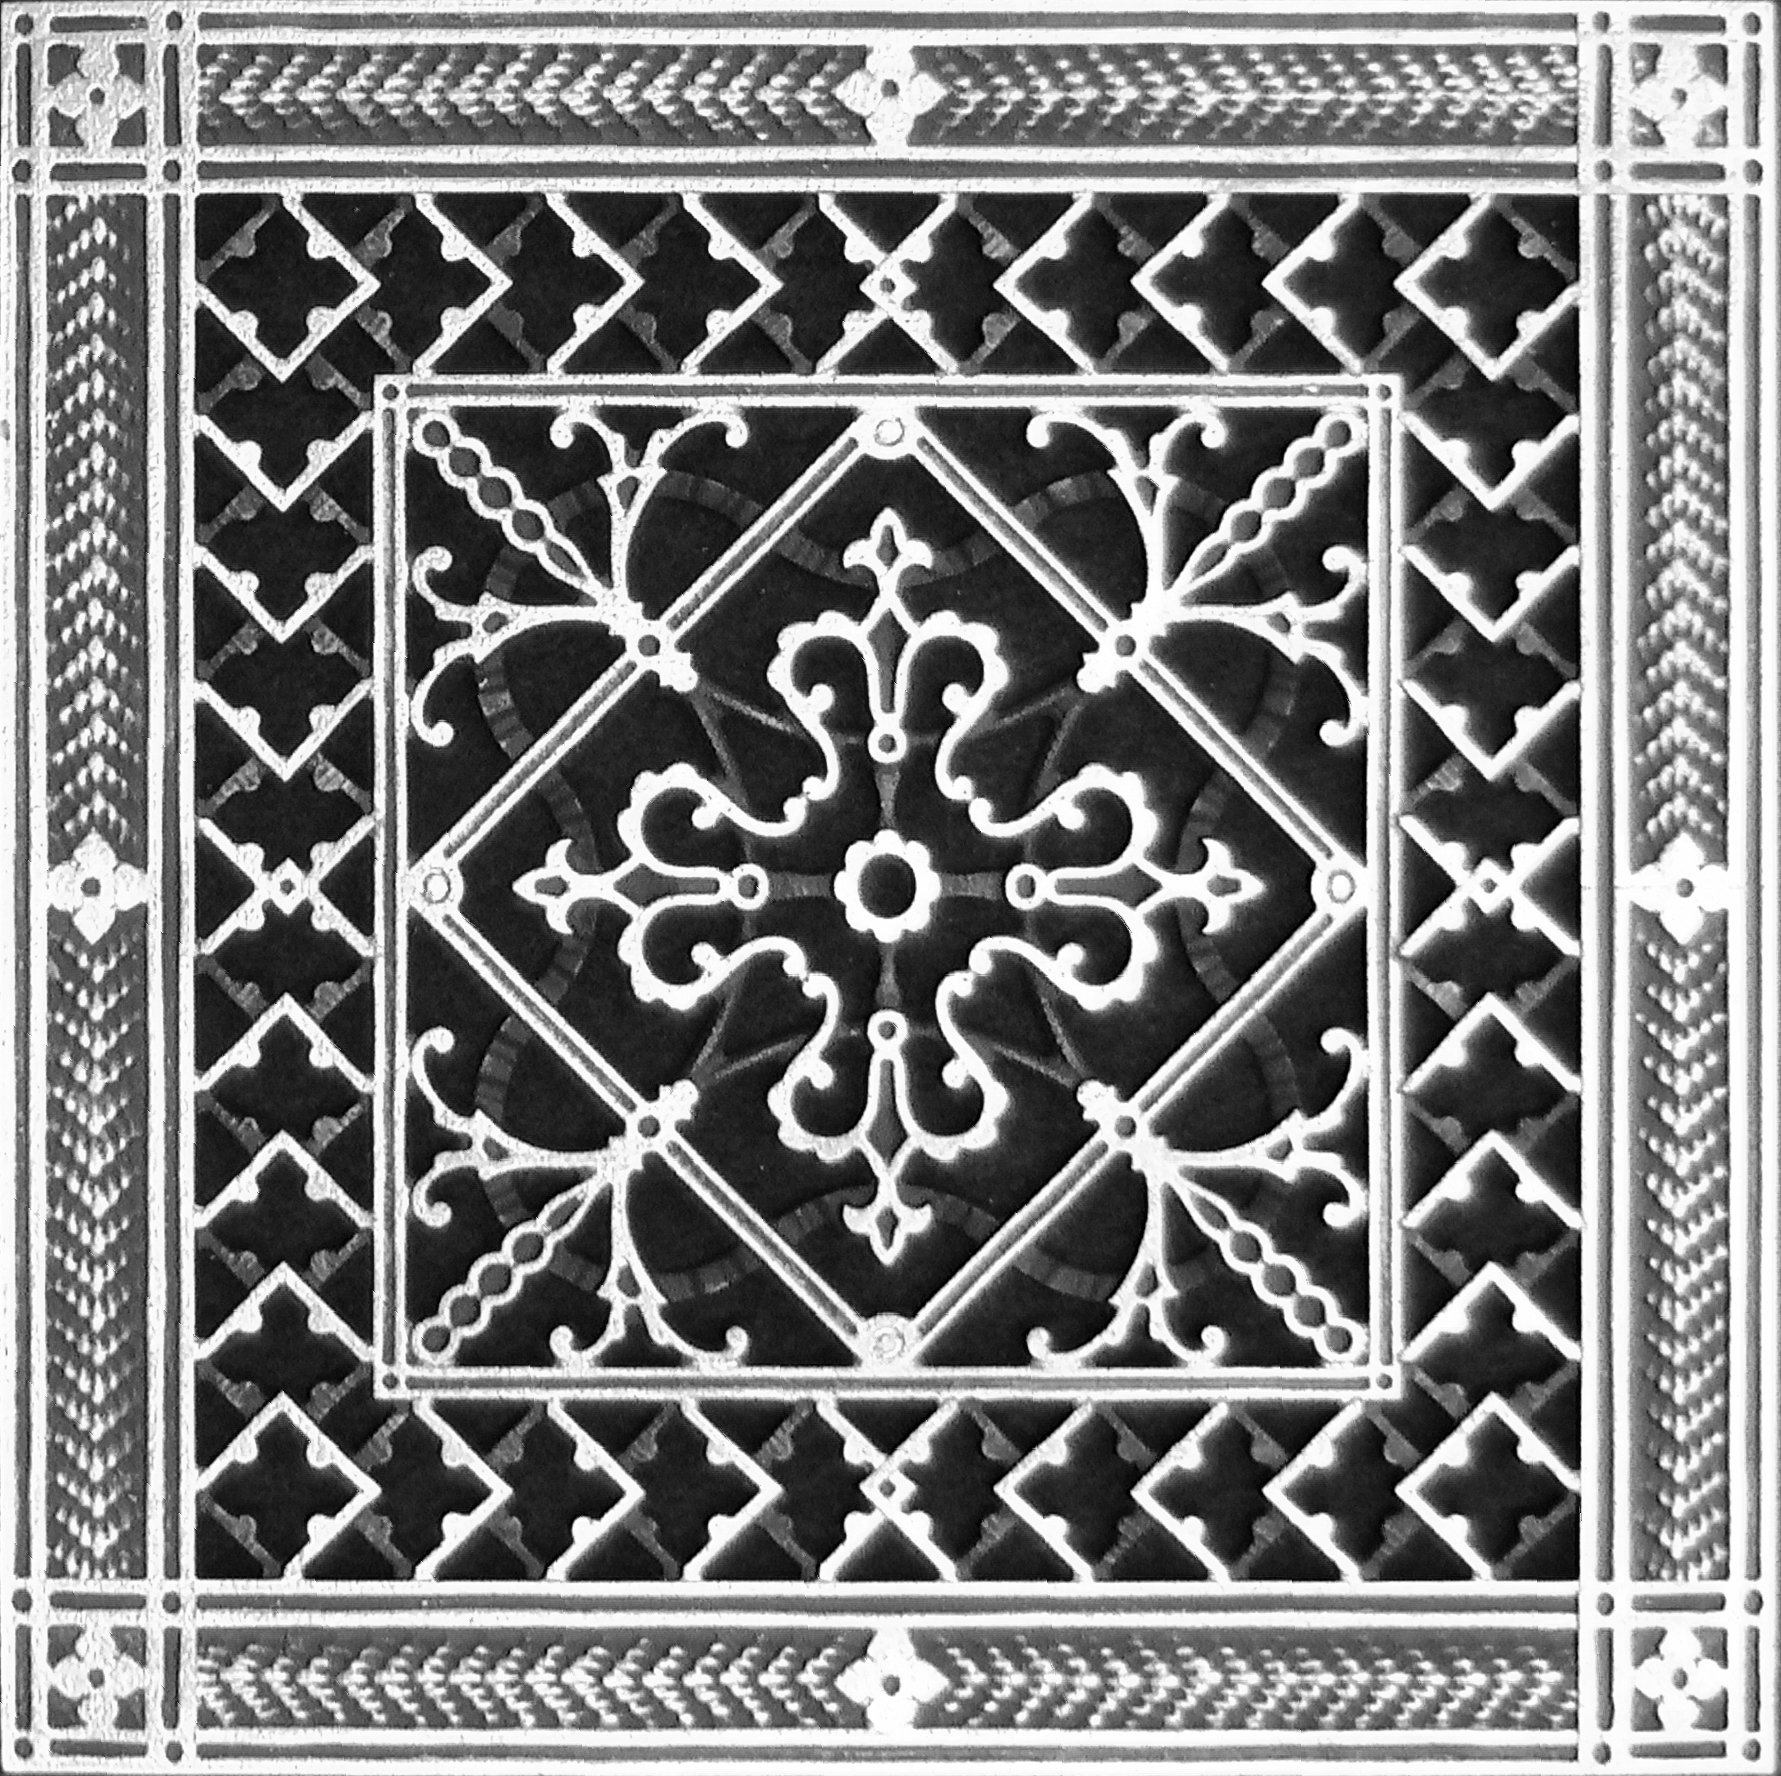 Decorative Grille, Vent Cover, or Return Register. Made of Urethane Resin to fit over a 10''x10'' duct or opening. Total size of vent is 12''x12''x3/8'', for wall and ceiling grilles (not for floor use).